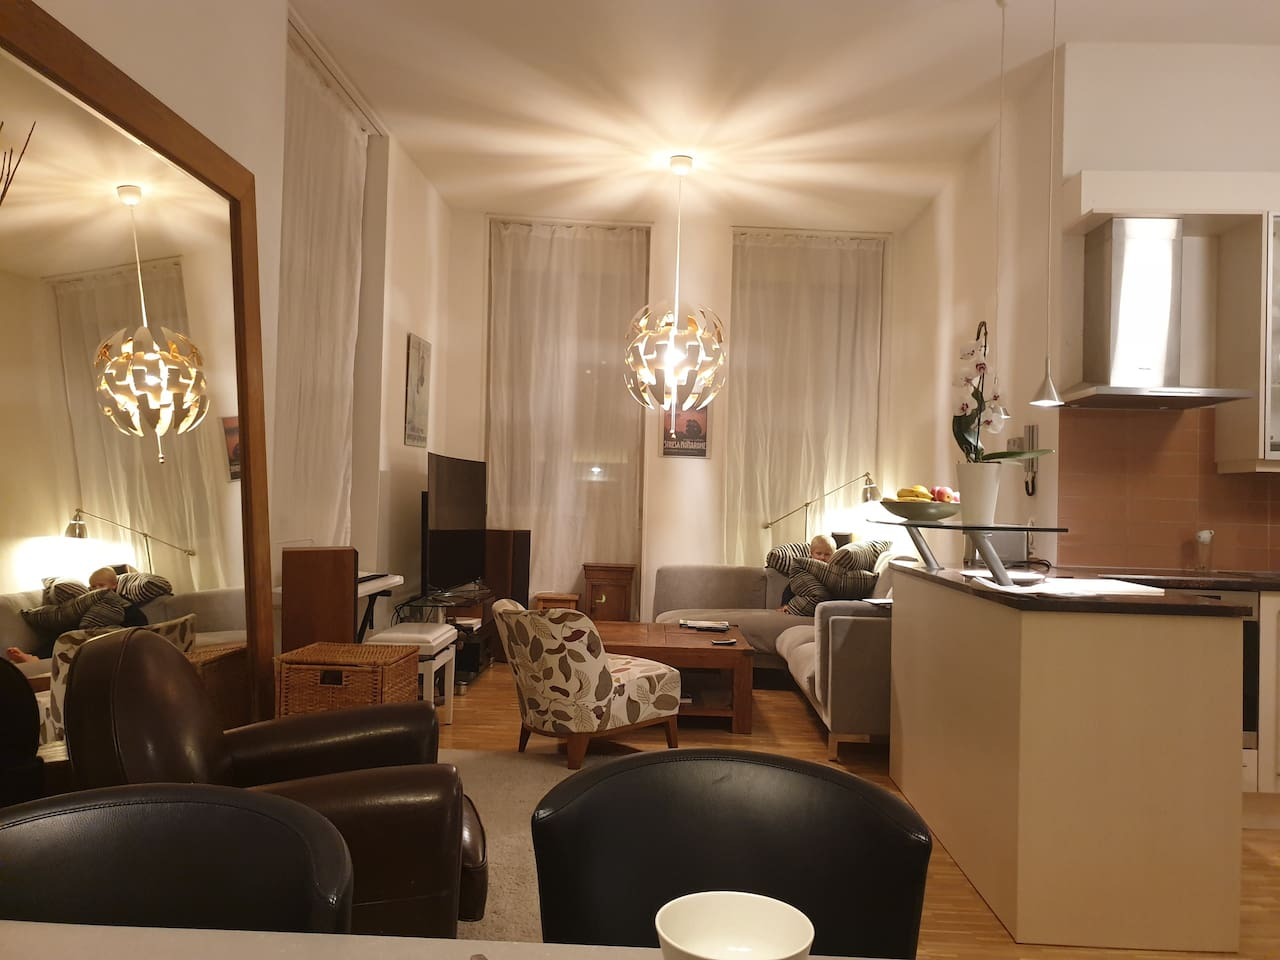 Open Living Room with high ceilings and open kitchen